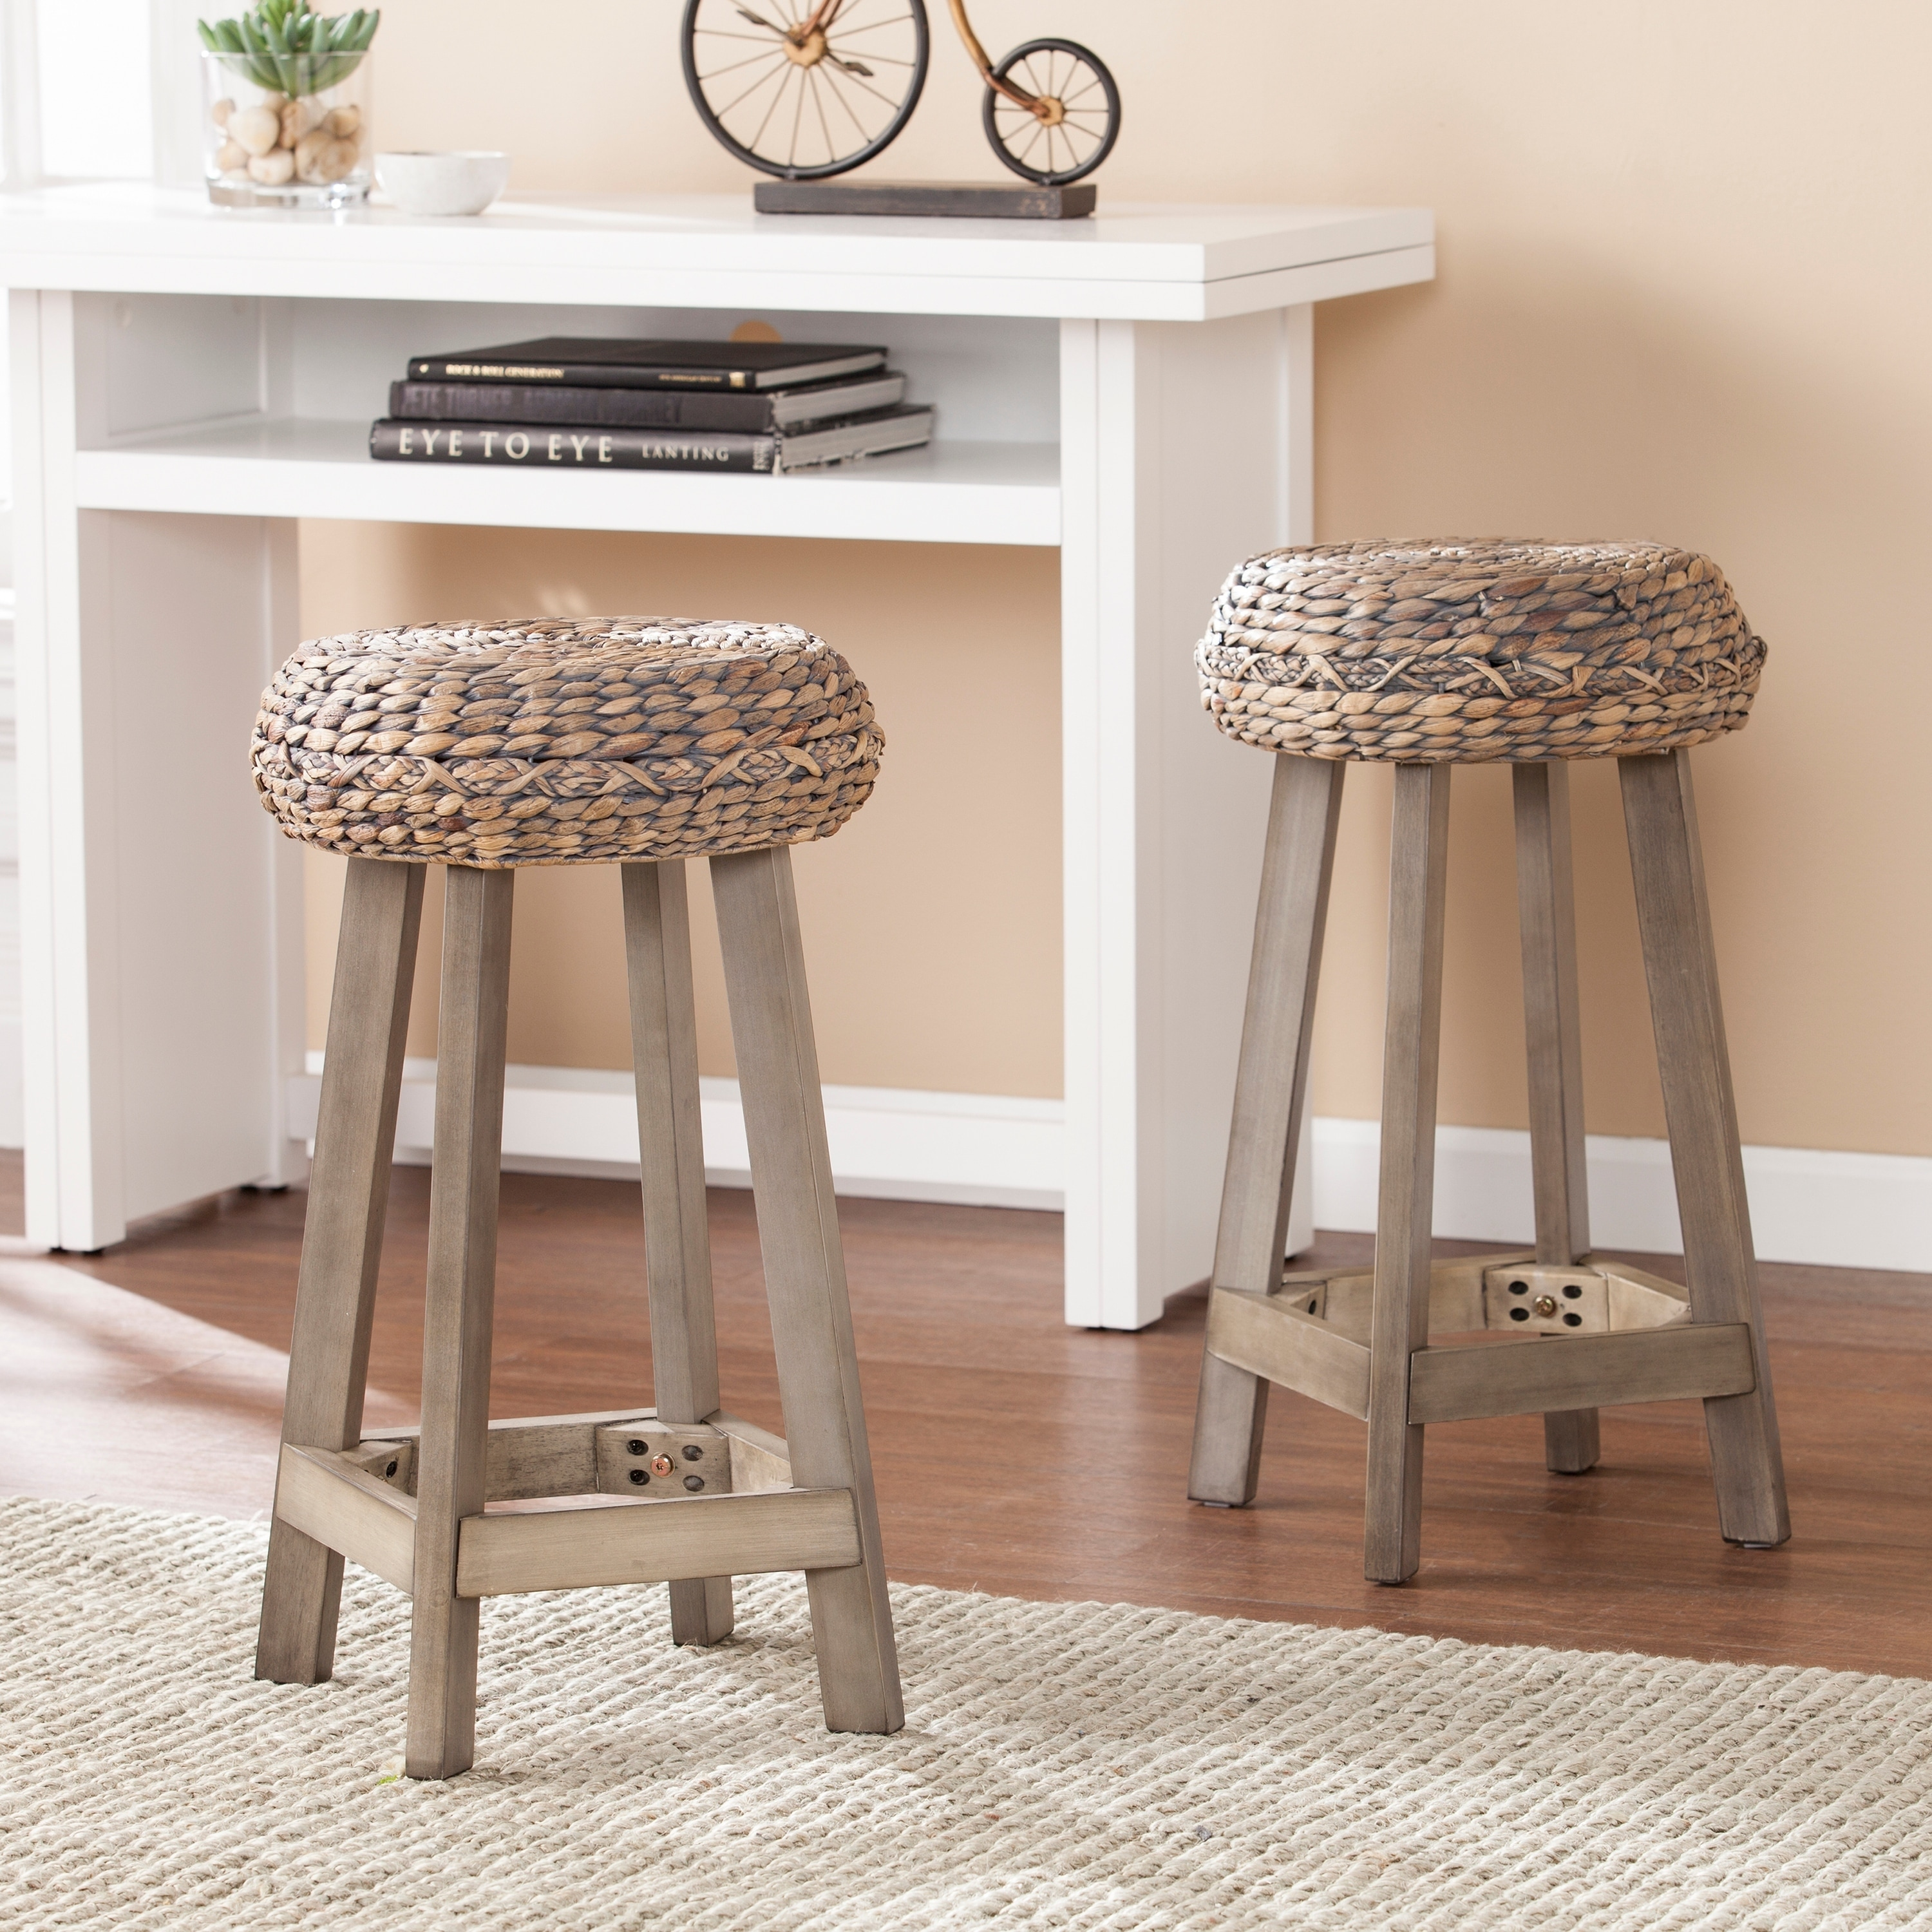 Shop Harper Blvd Roxella Backless Round Water Hyacinth 24 Stools